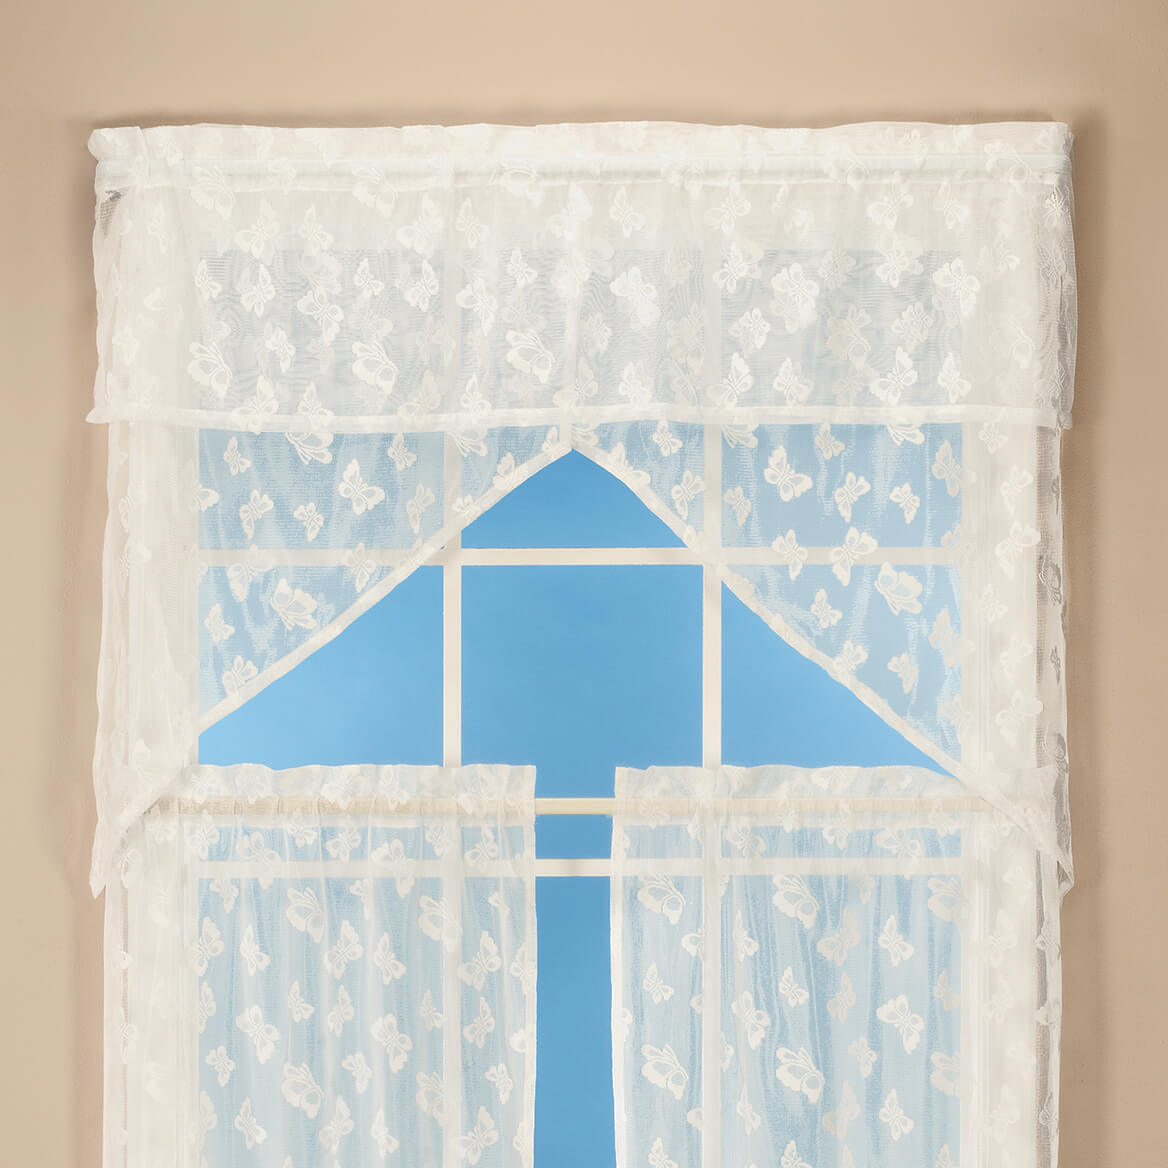 Curtains & Valences - Window Treatments - Walter Drake